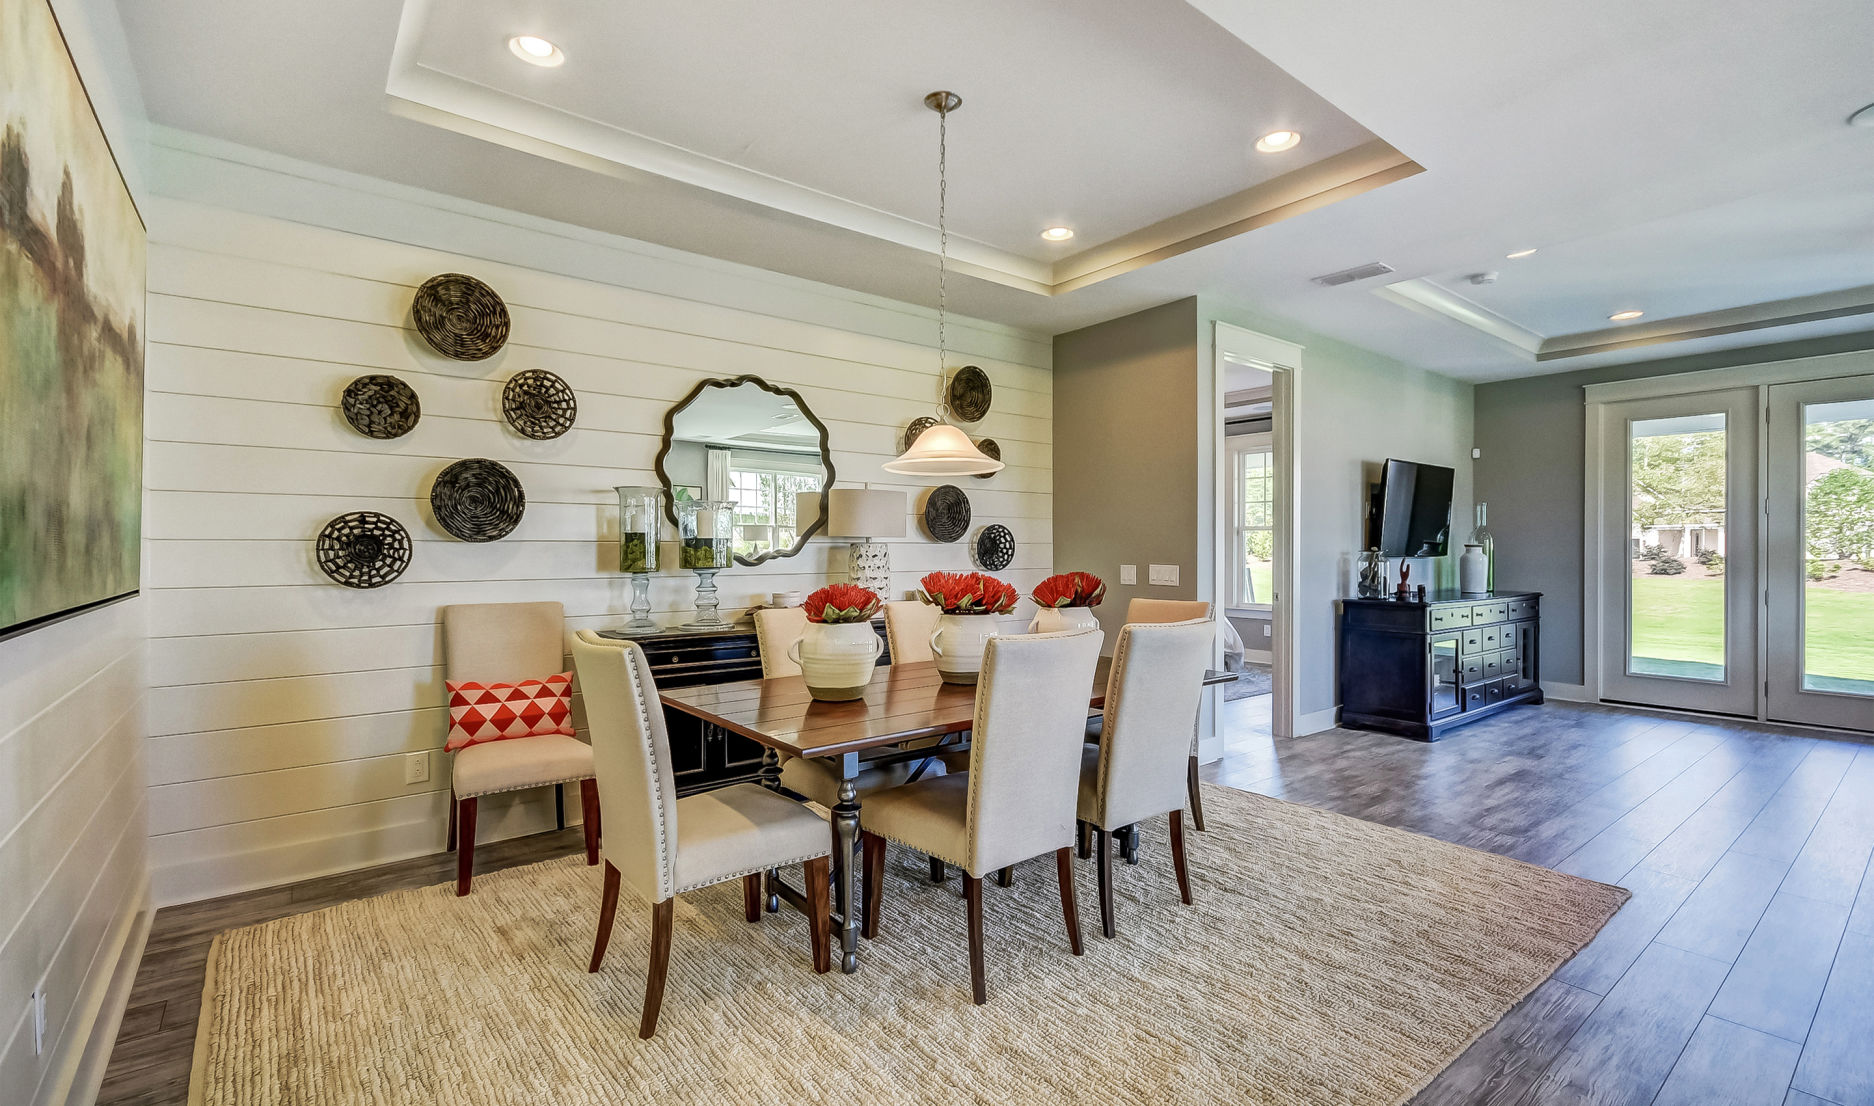 From Garages To Kitchens, Open Spaces Still Reign In Home Design